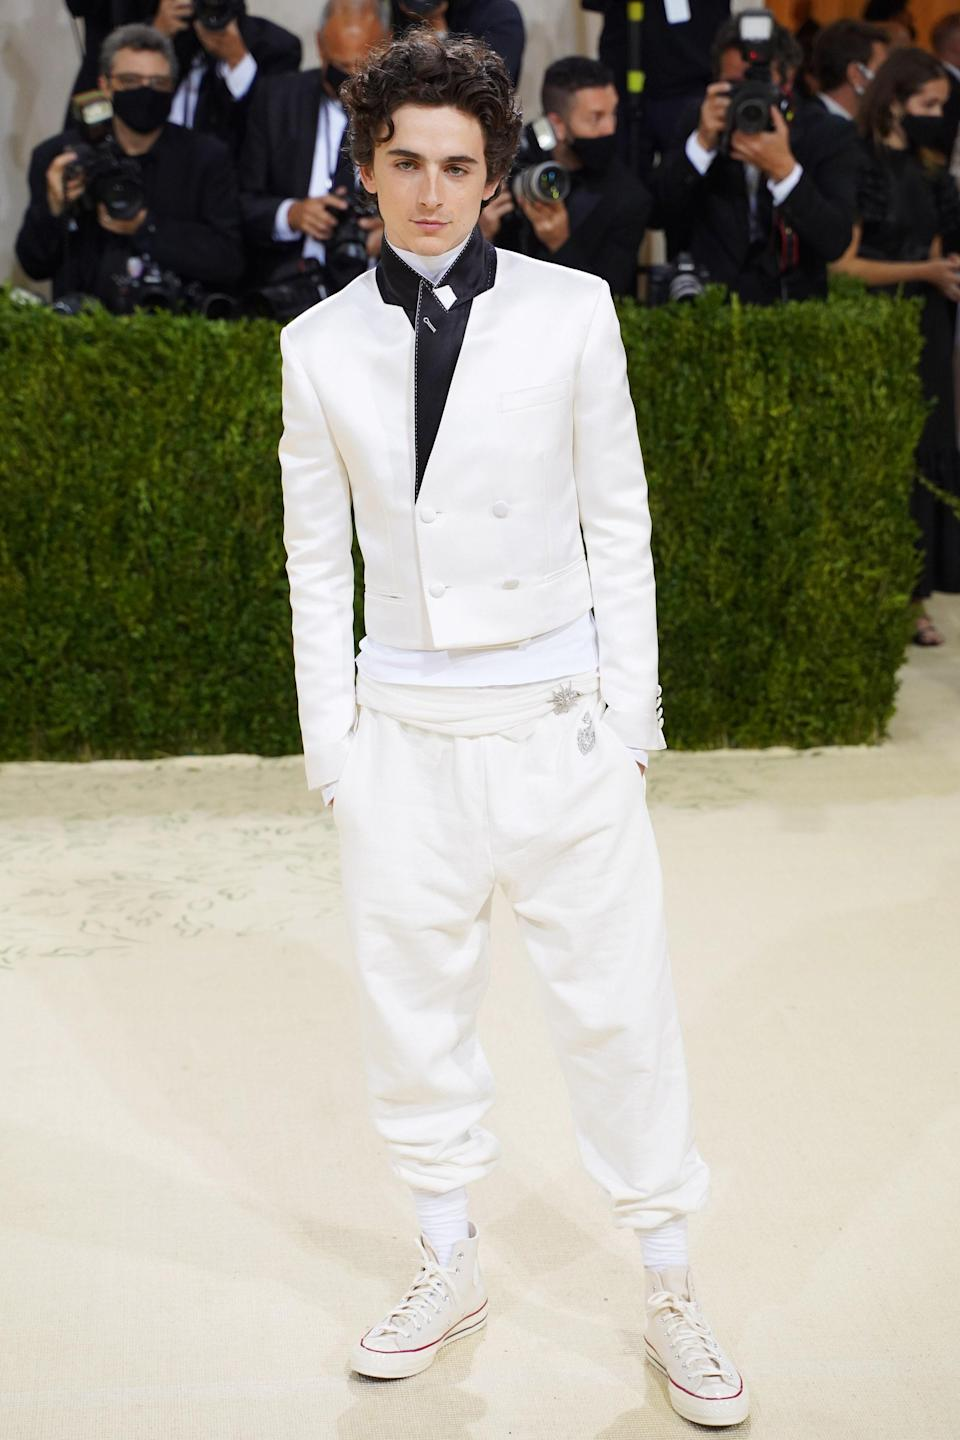 Hollywood's golden boy and 2021 Met Gala co-host Timothée Chalamet looked like a modern-day prince in his Haider Ackermann tuxedo. He dressed down his swanky look with a humble pair of Converse Chuck Taylors – an American classic. You might love or hate his eclectic mix, but there's no denying that he nailed the theme!